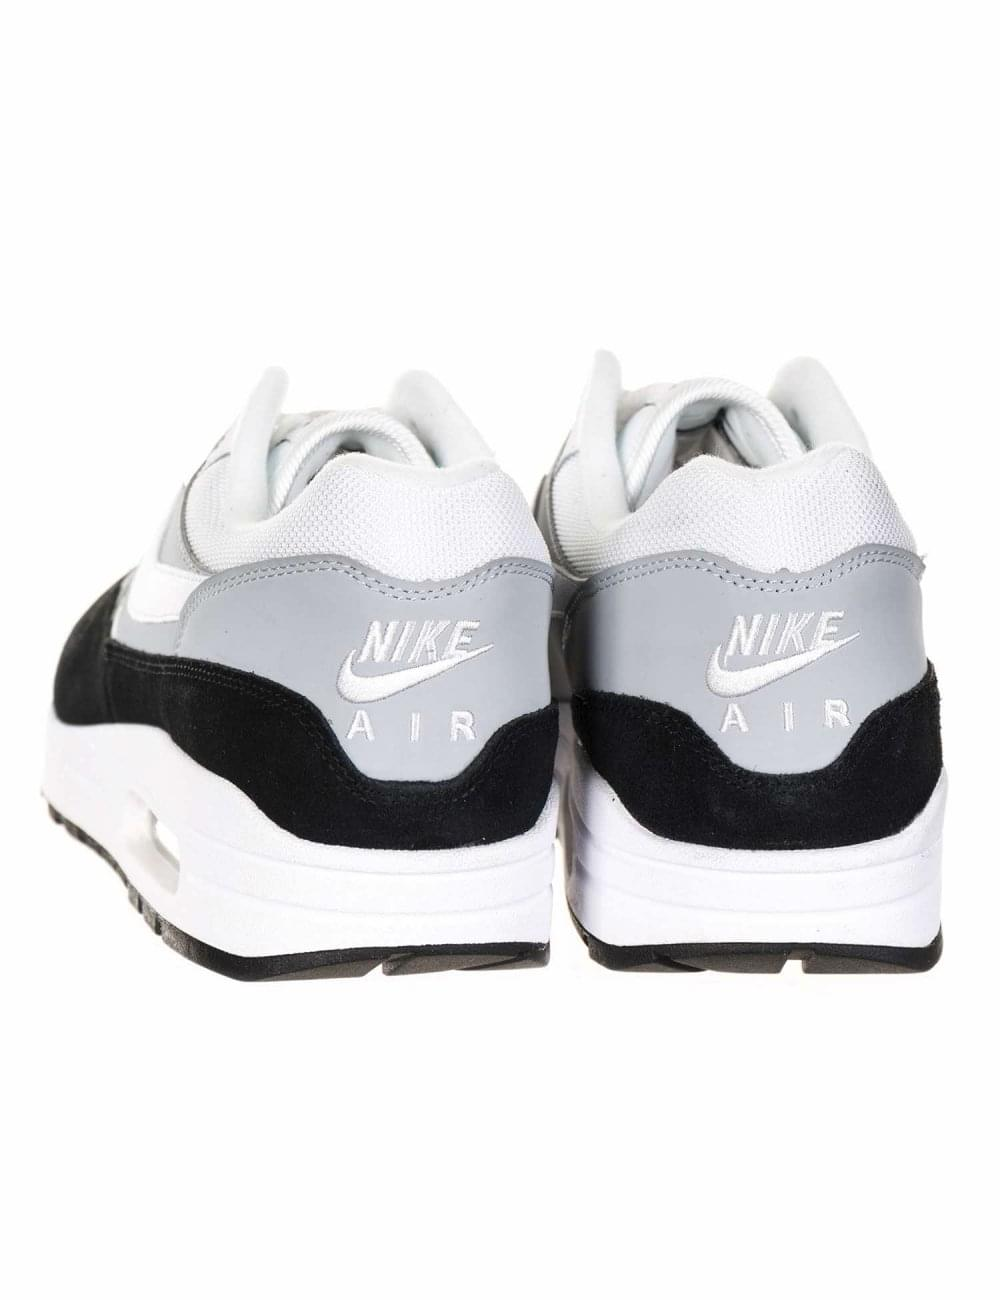 3a47e43f82b6a Nike Air Max 1 Trainers - Wolf Grey Black - Footwear from Fat Buddha ...